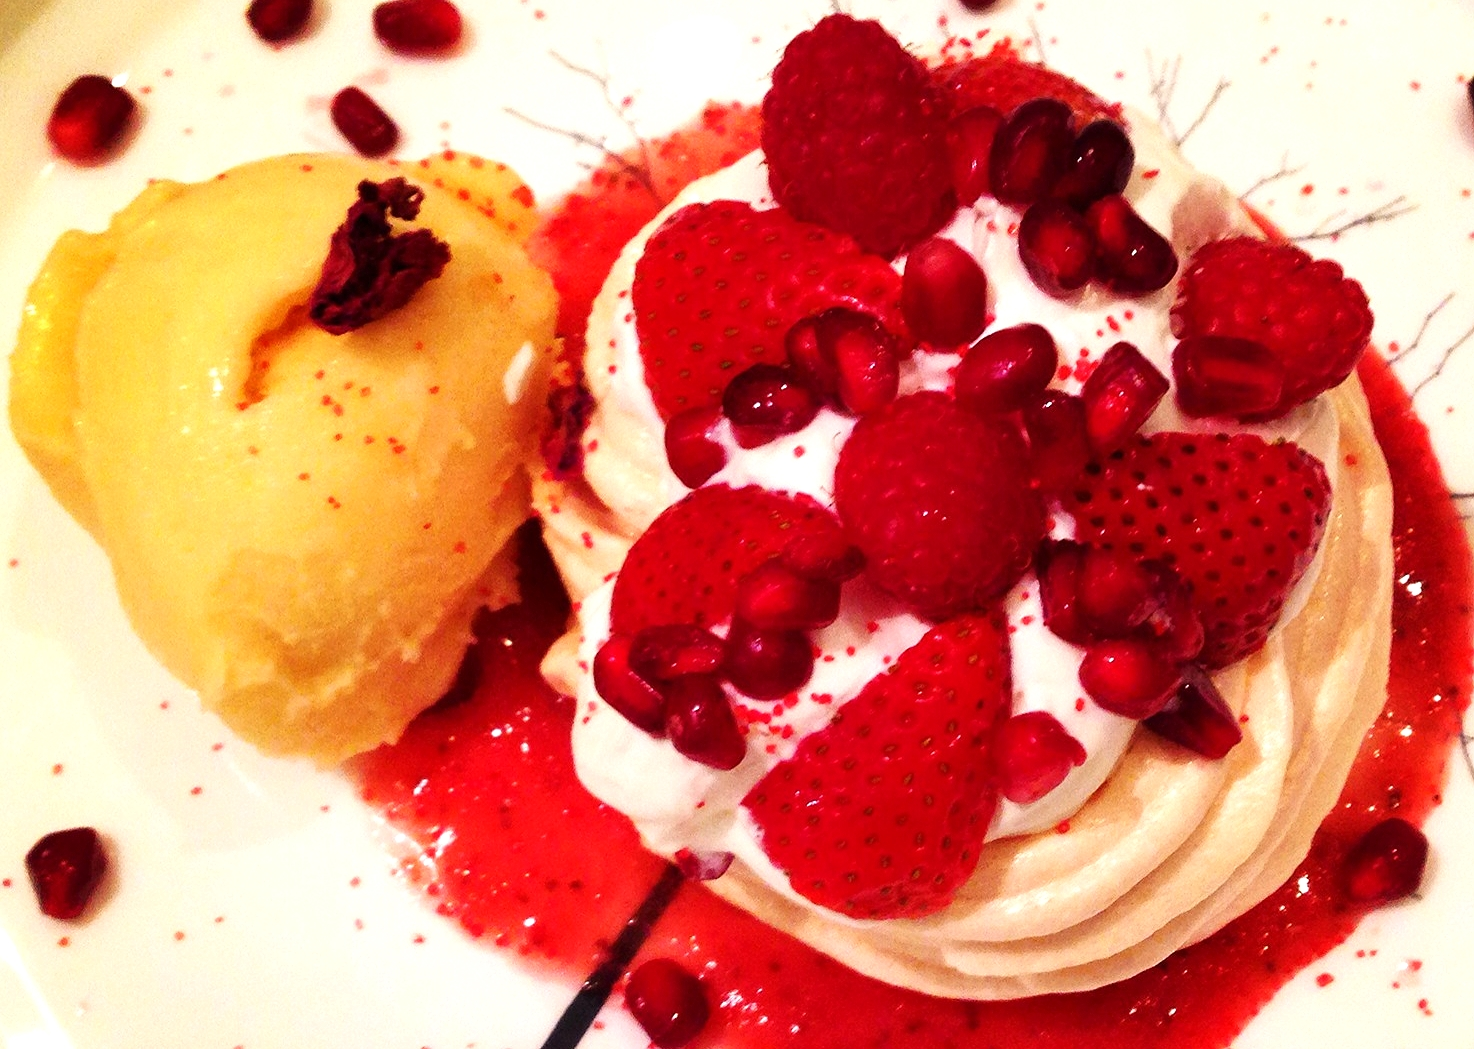 Mini Pavlova with creme chantilly, red fruits, strawberry sauce, and passion fruit sorbet